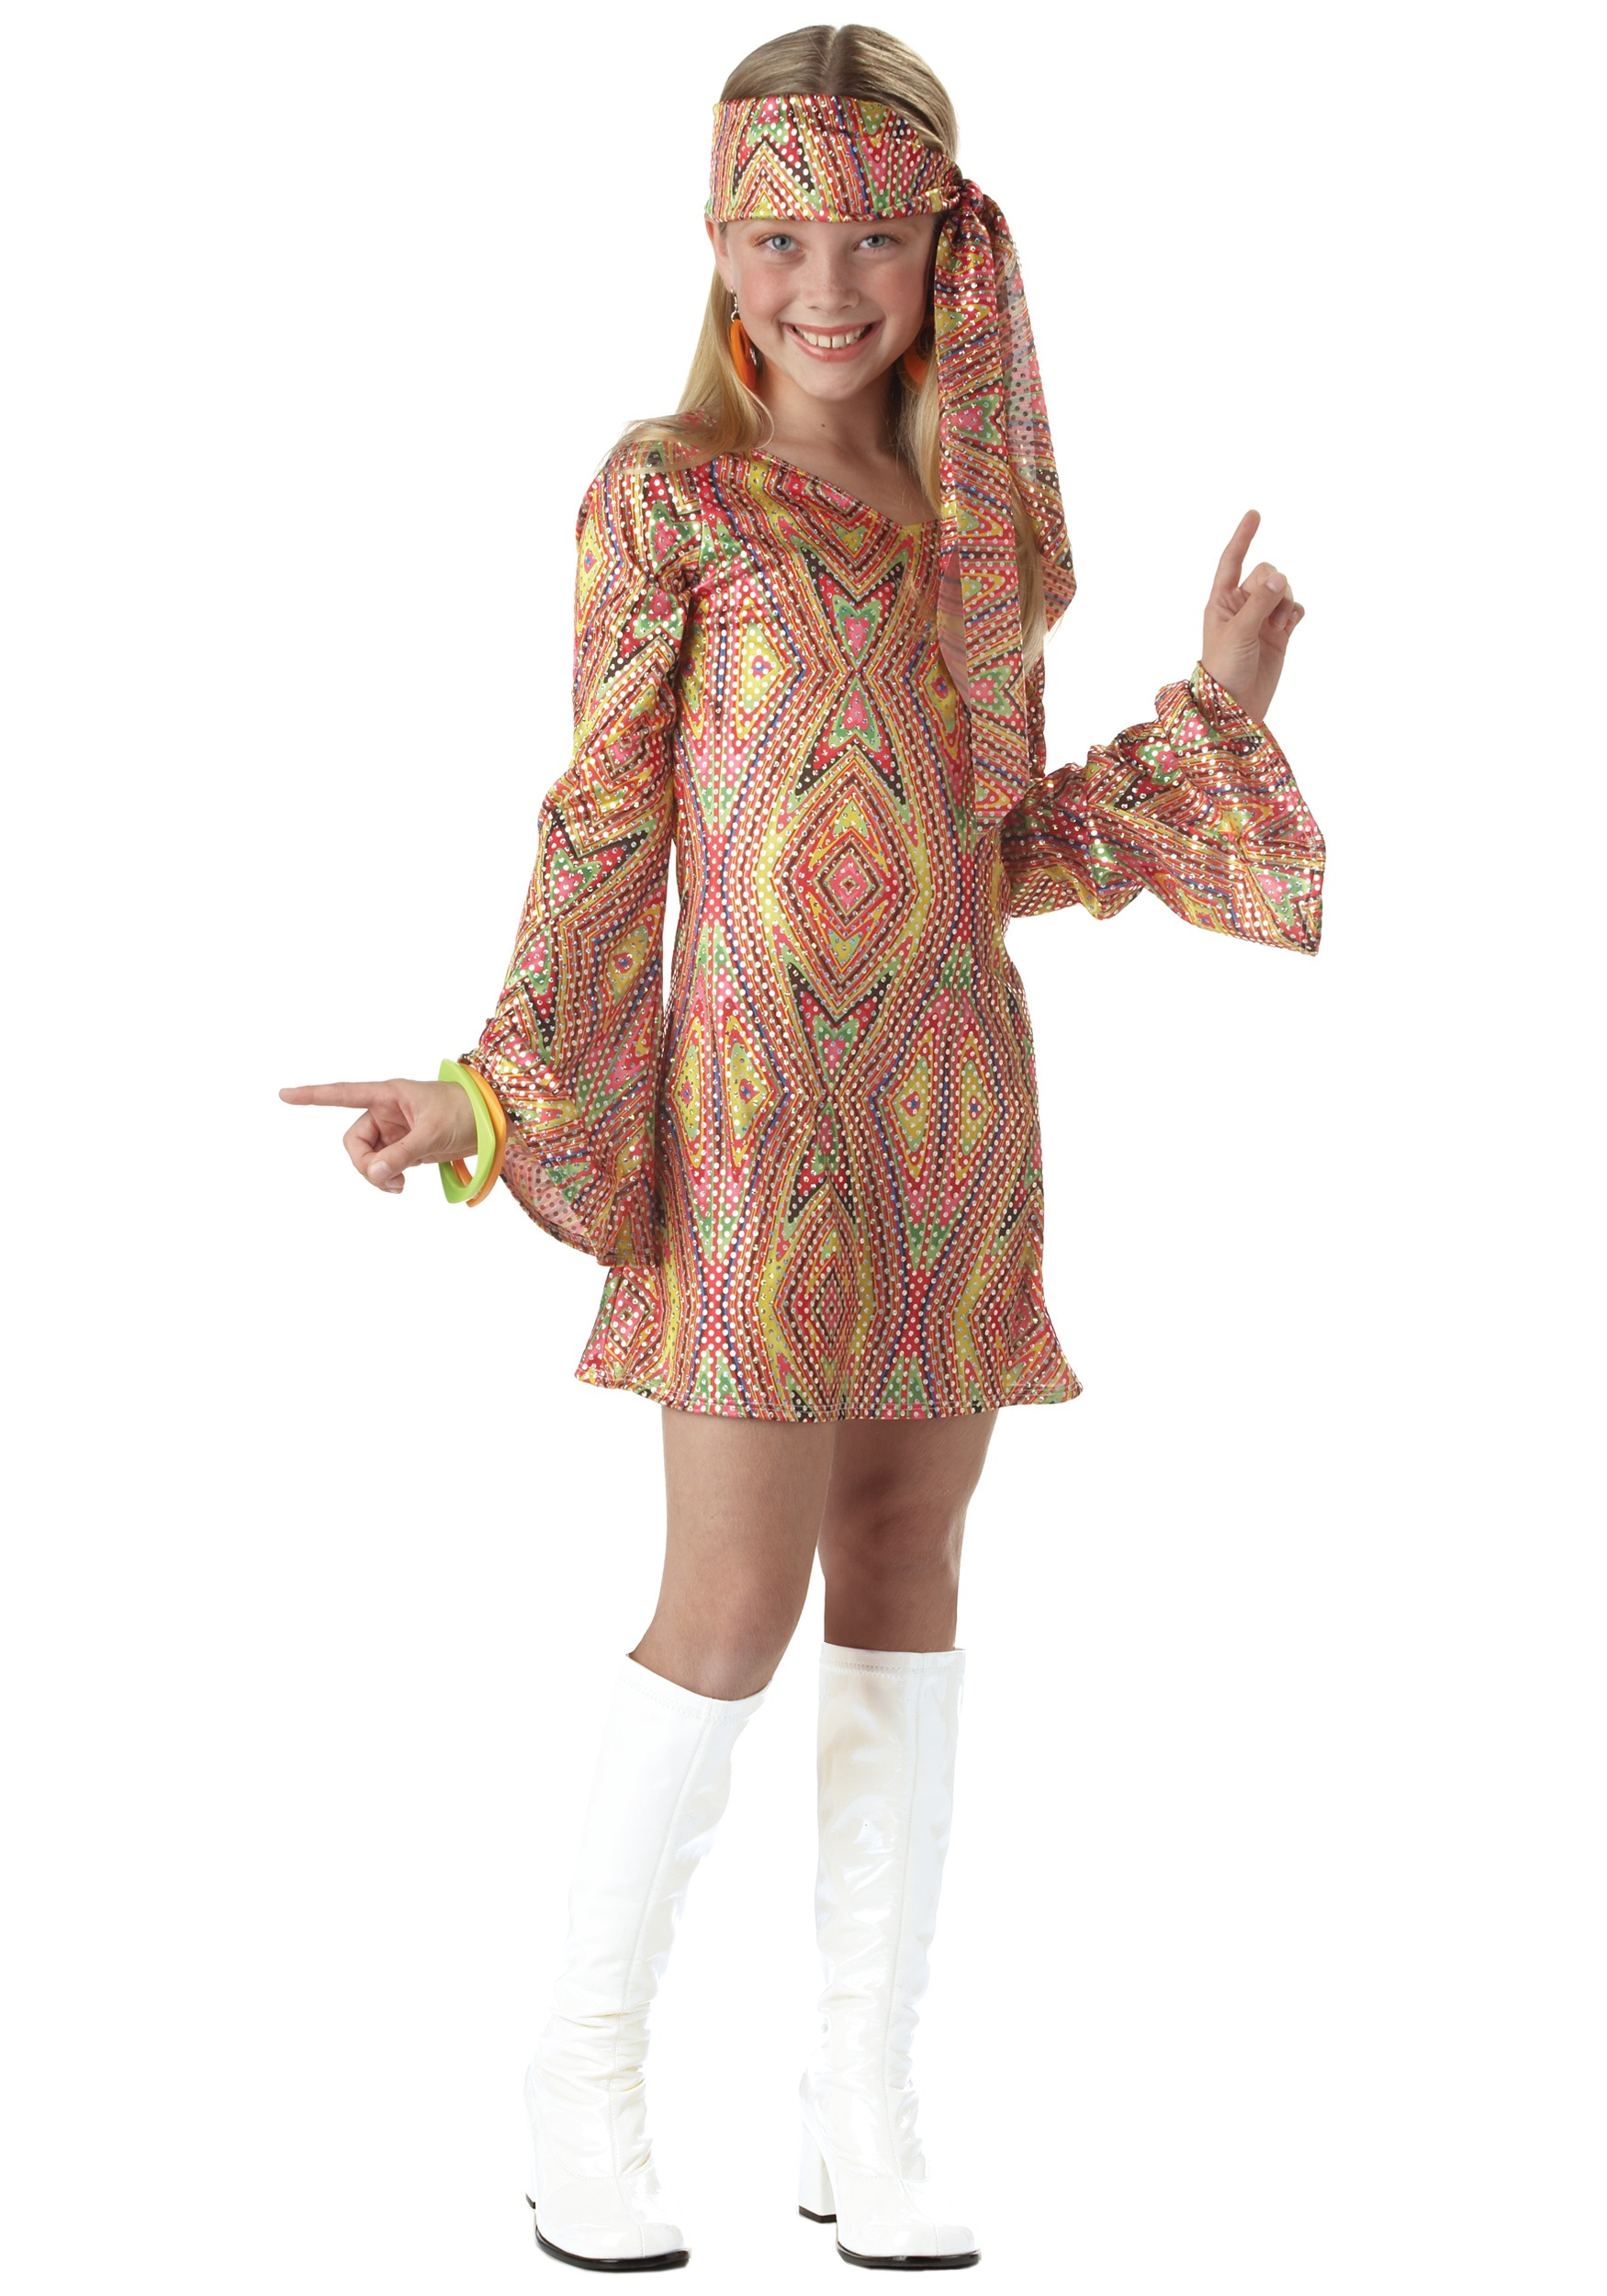 All Departments Auto & Tires Baby Beauty Books Cell Phones Clothing Electronics Food. Disco Costumes. Party & Occasions. Halloween. Disco Costumes. Product - Sexy 60s 70s Hippie Mod Go Go Disco Girl Womens Halloween Costume S-L. Product Image. Price $ Product Title.